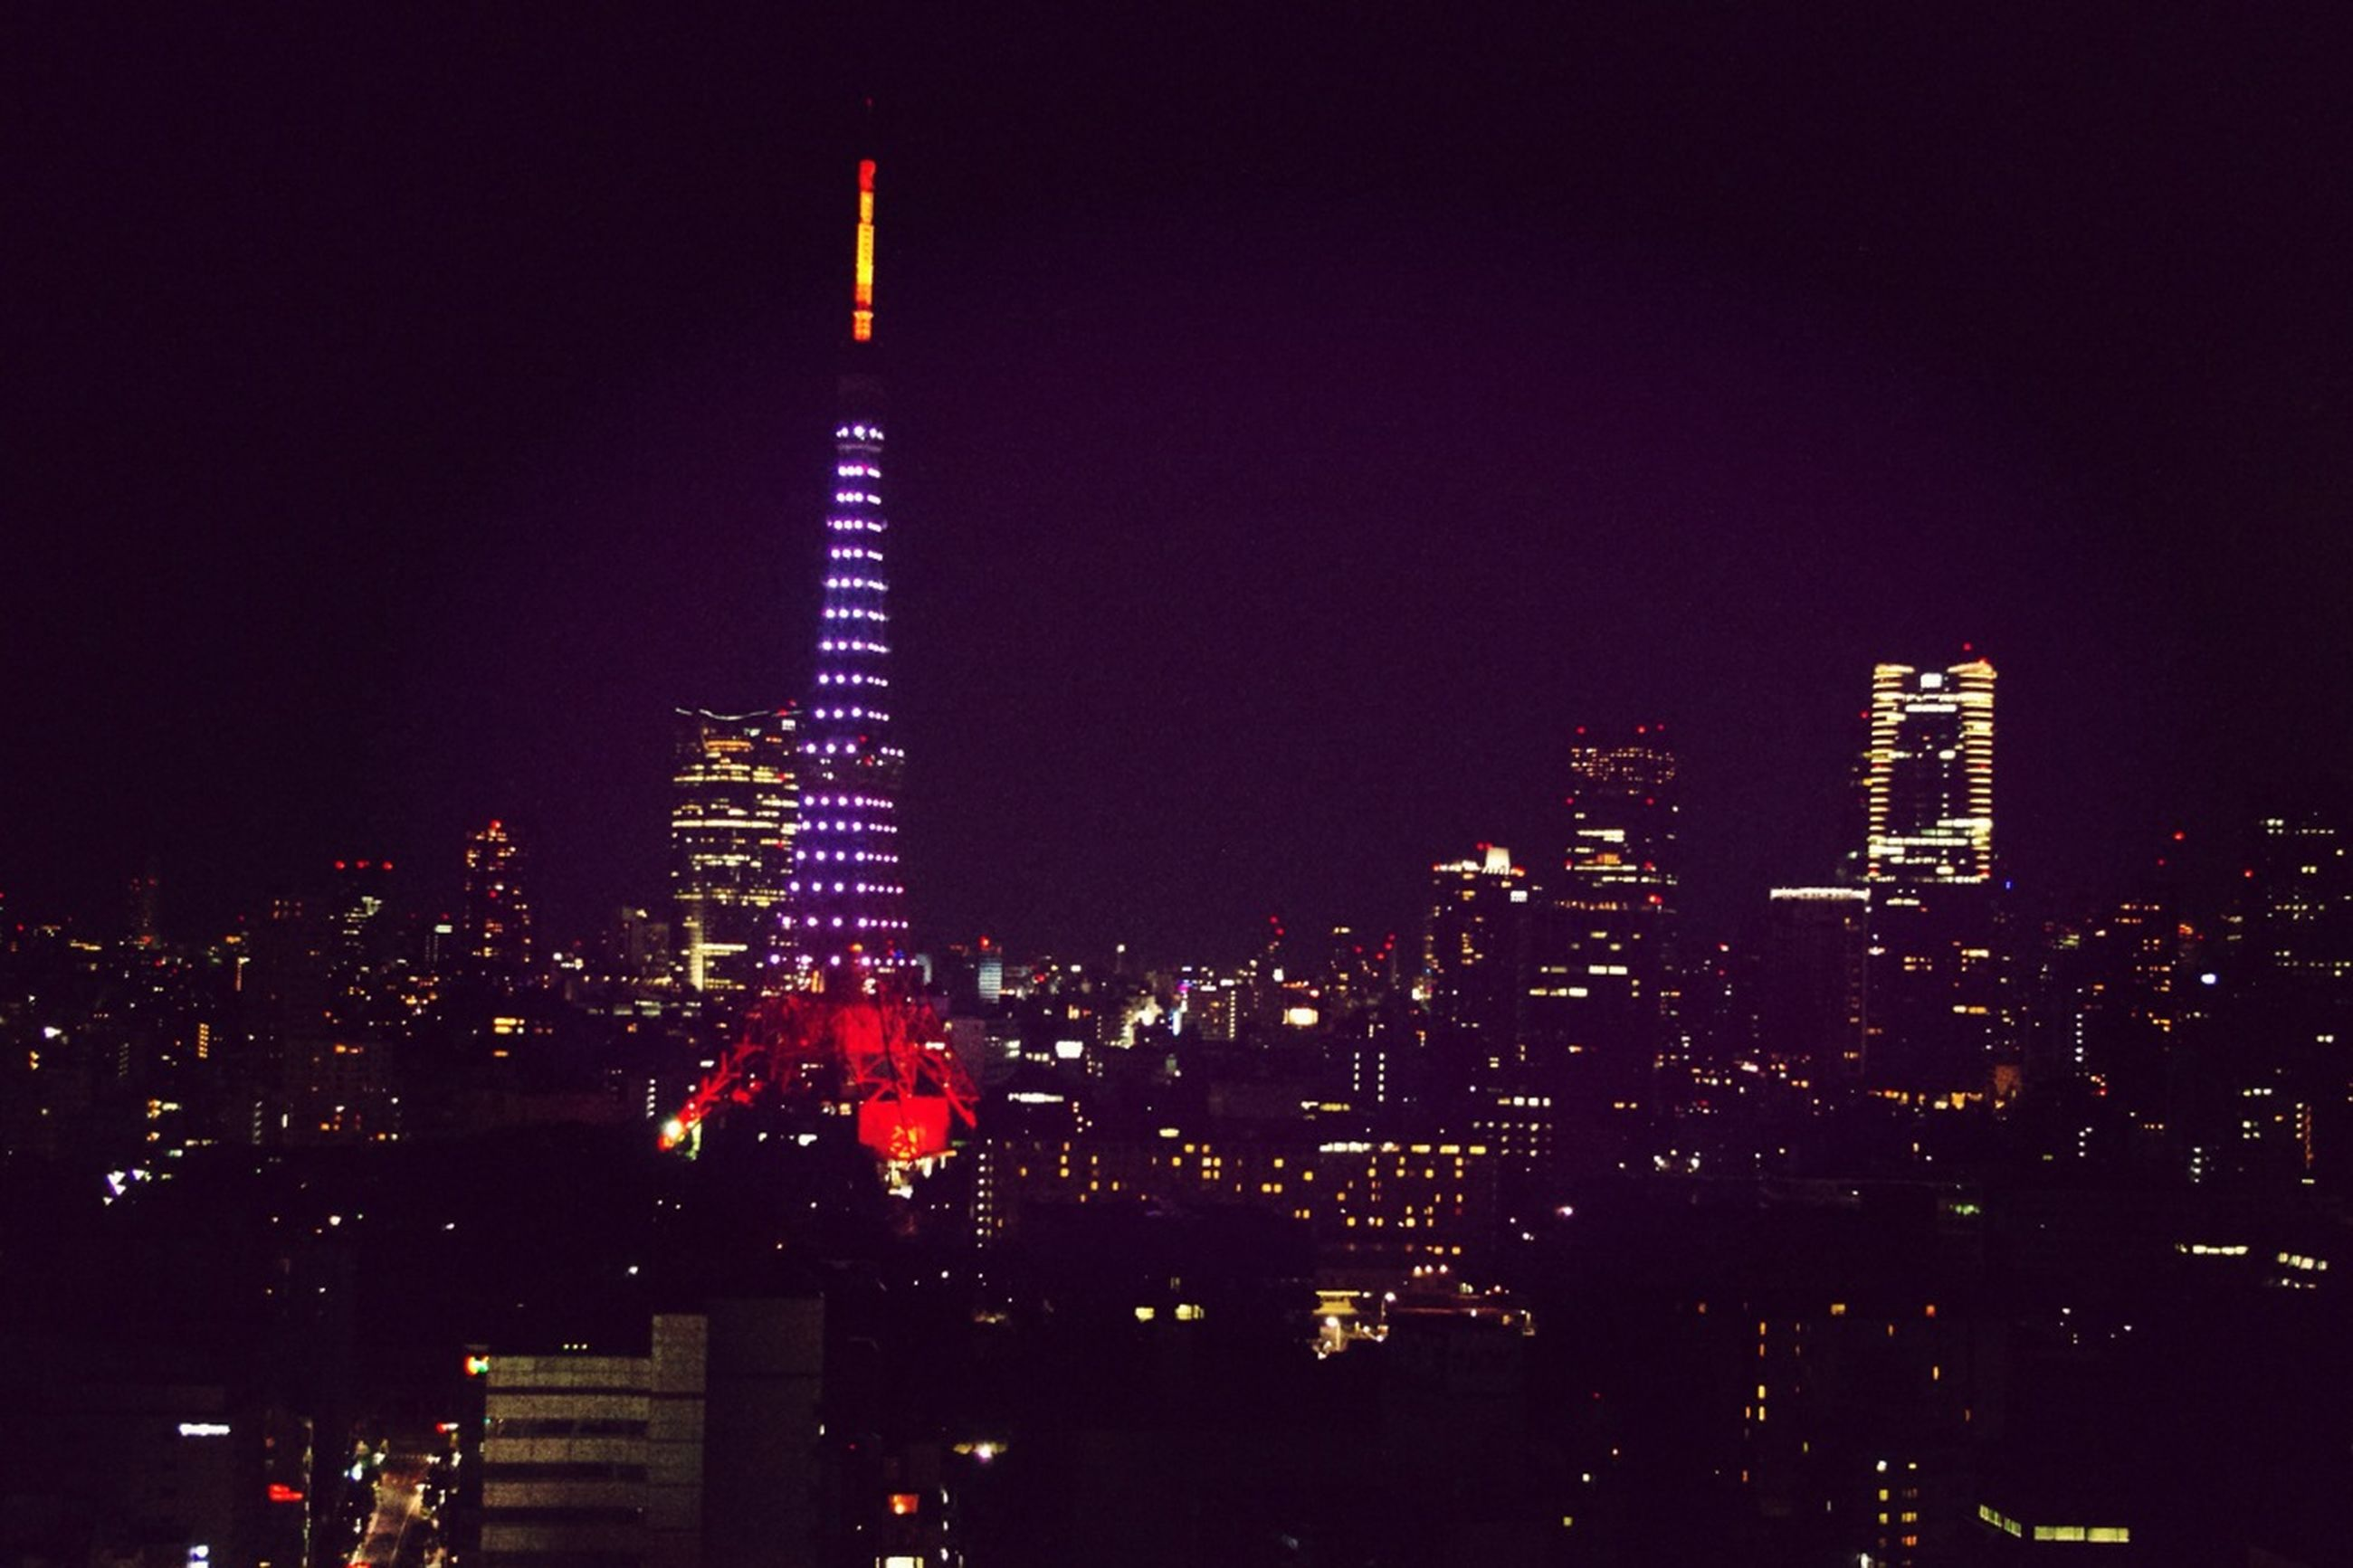 building exterior, illuminated, night, city, skyscraper, architecture, built structure, tall - high, tower, cityscape, modern, office building, clear sky, capital cities, urban skyline, financial district, tall, city life, crowded, travel destinations